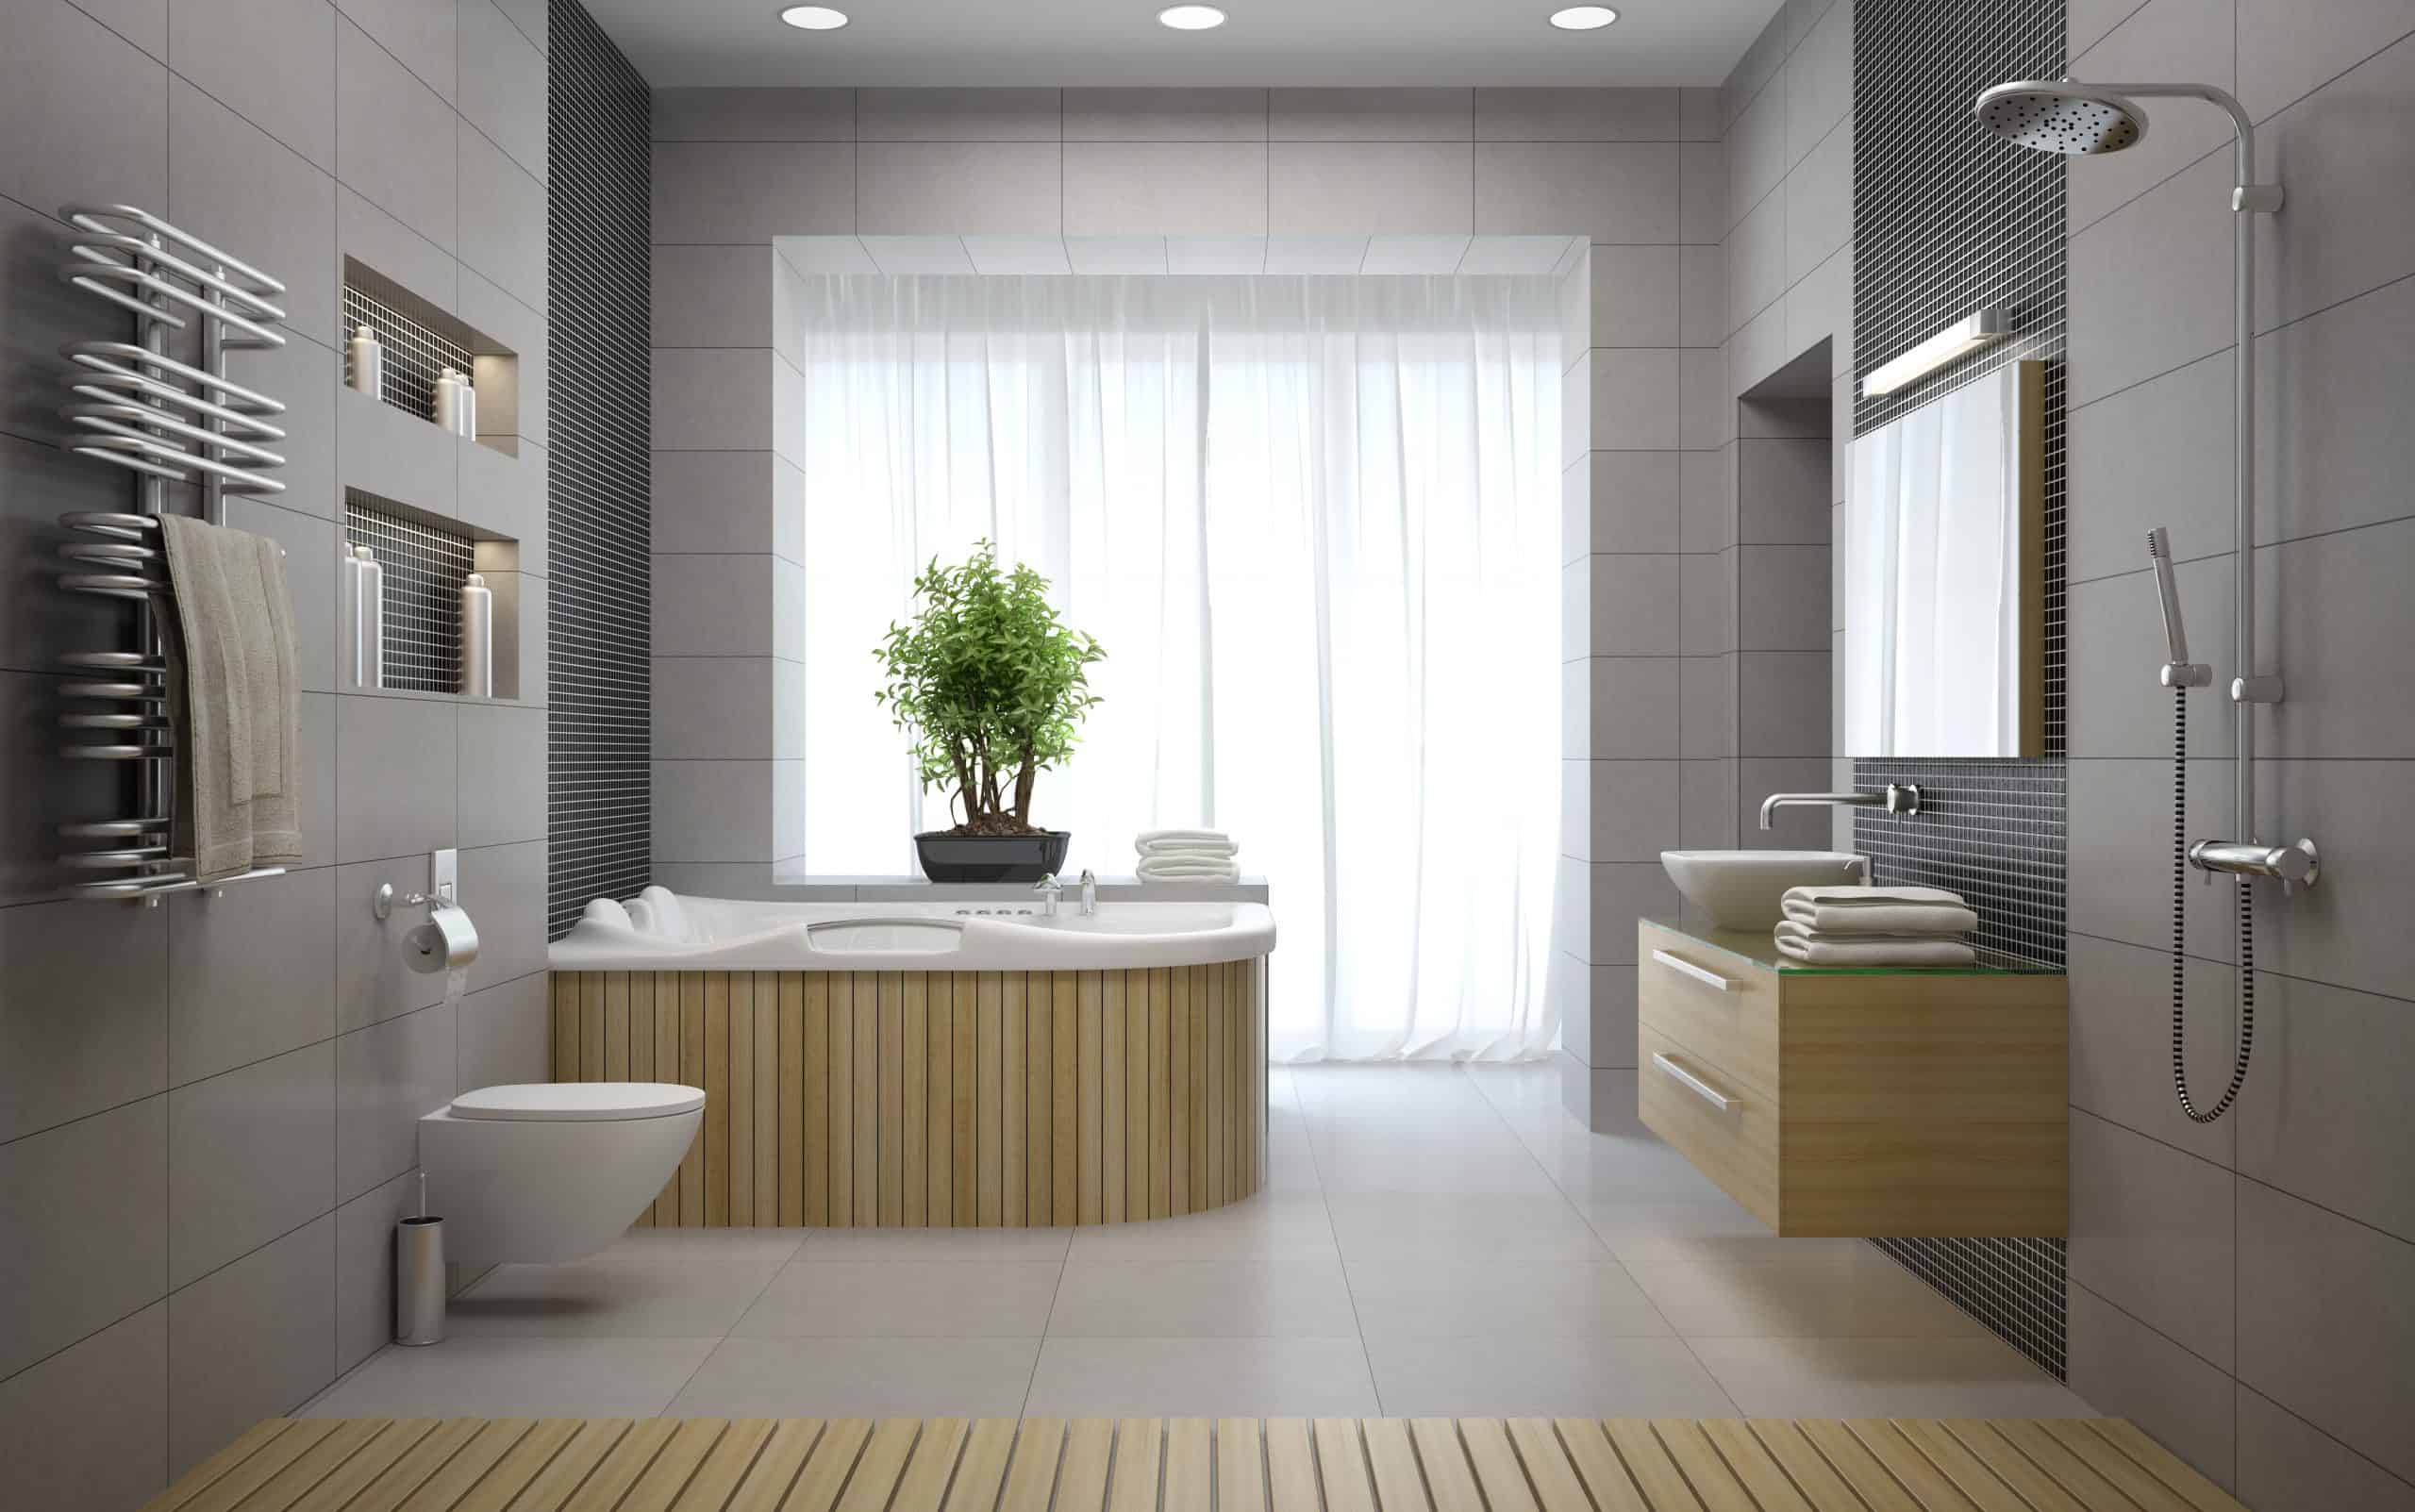 How a Bathroom Remodel Will Impact Your Life